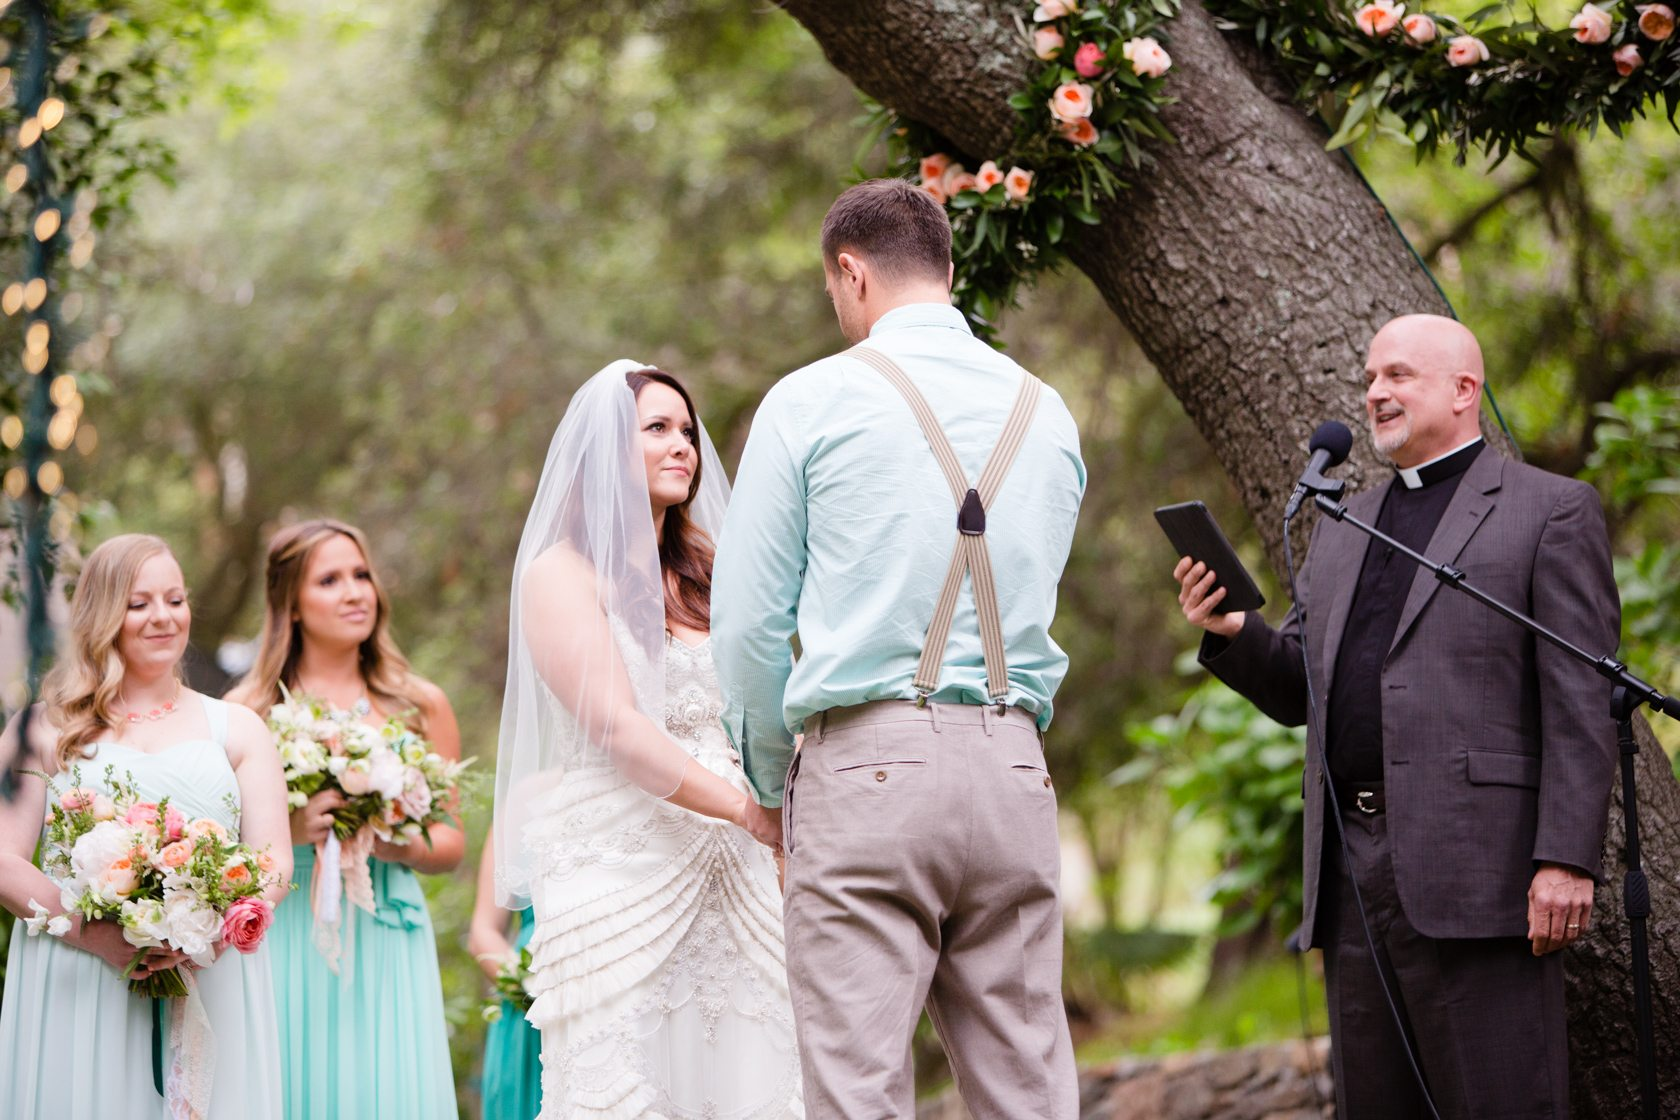 The_Printed_Palette_Wedding_at_Calamigos_Ranch_070.jpg